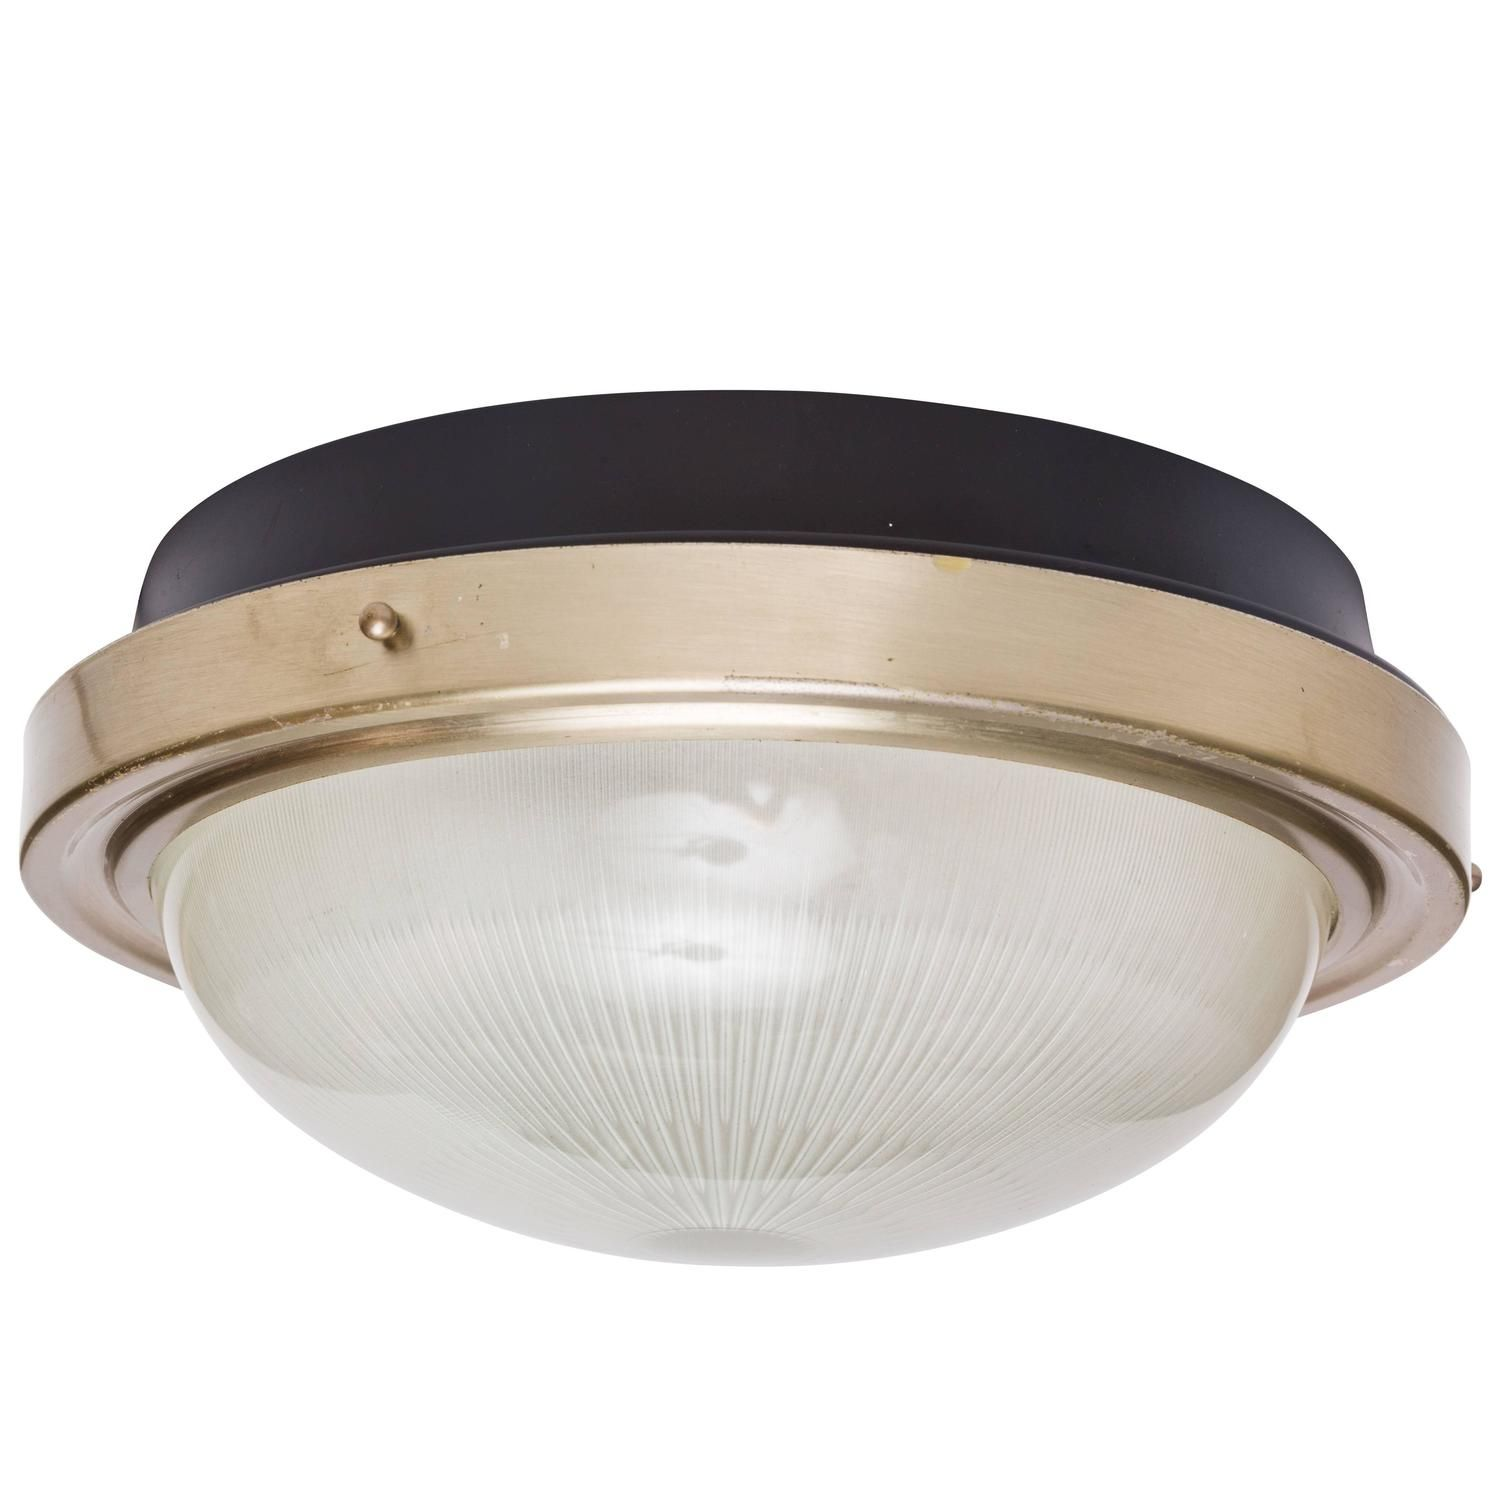 Sergio Mazza Ceiling or Wall Light 1